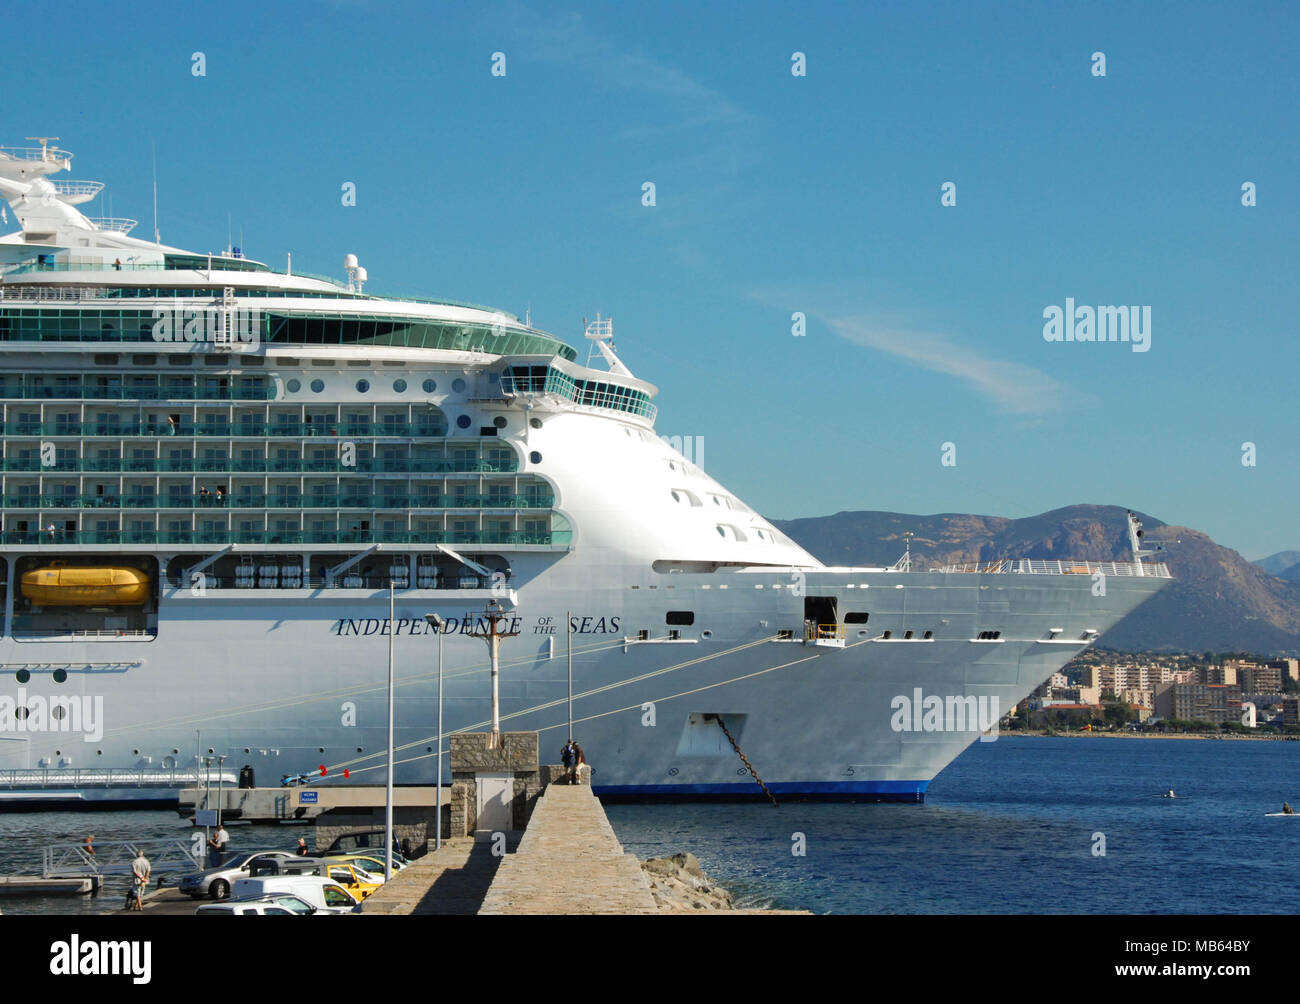 Scenic view of the front of the cruise liner Independence of the Seas - Stock Image